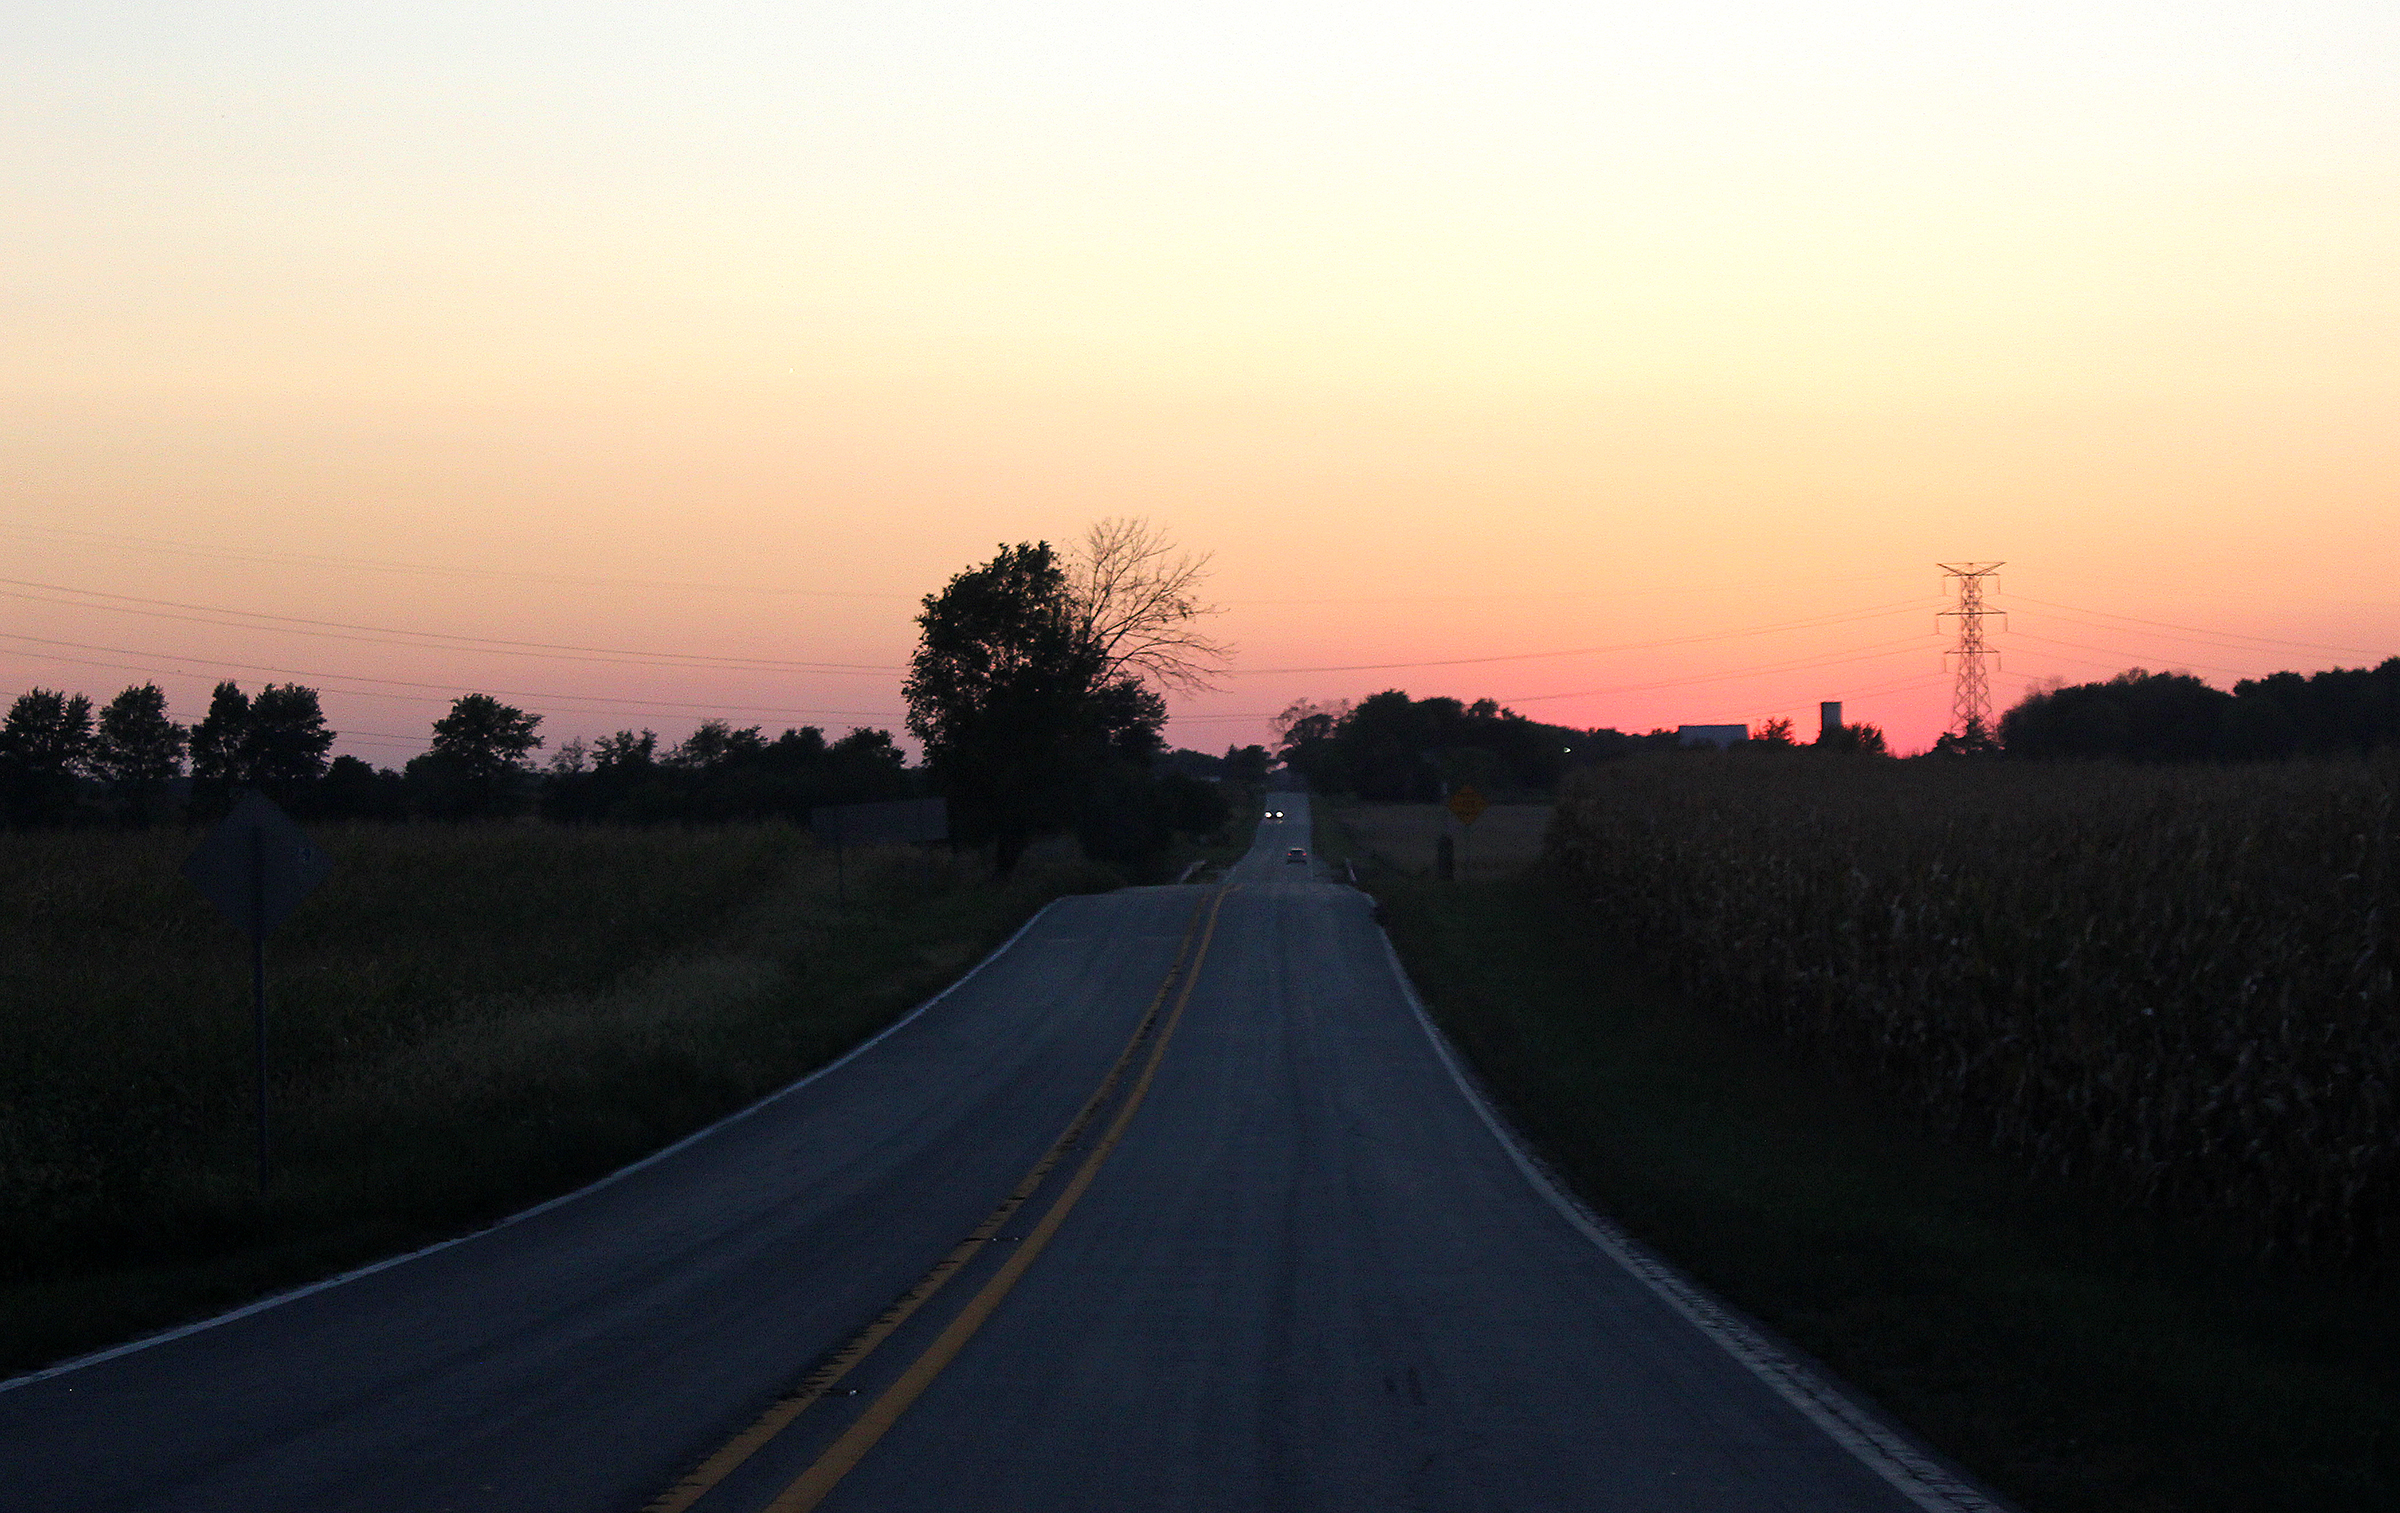 Corn on the right, beans on the left. Roads like this are obligatory travel corridors in this state. Yet, we regard them as things of beauty, particularly on nights with cloudless sunsets.